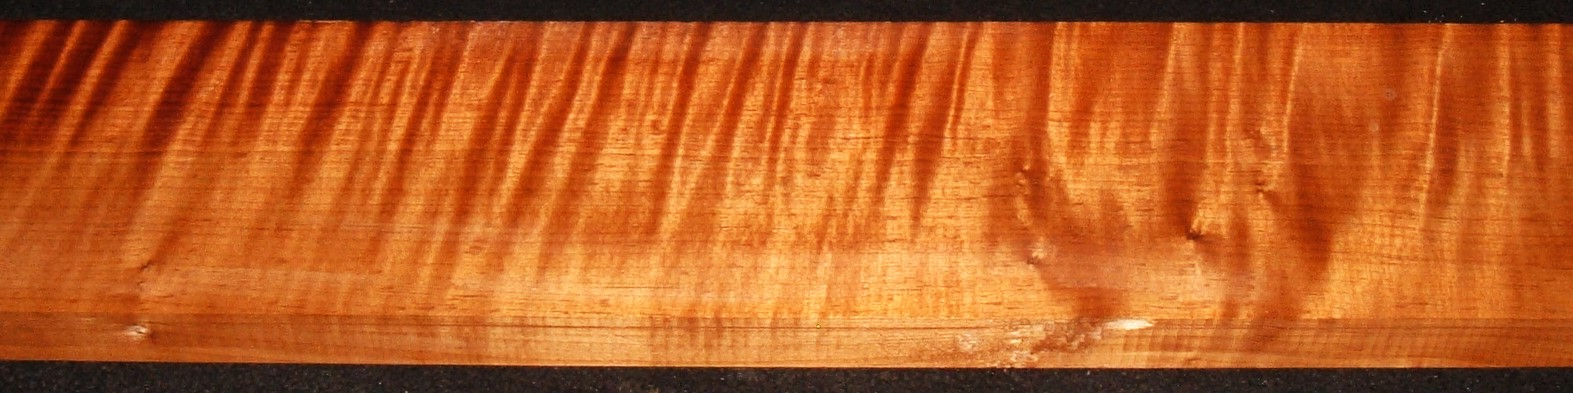 QRM2010-360JK, 1-1/8x5-7/8x47, Quartersawn Roasted Curly Maple